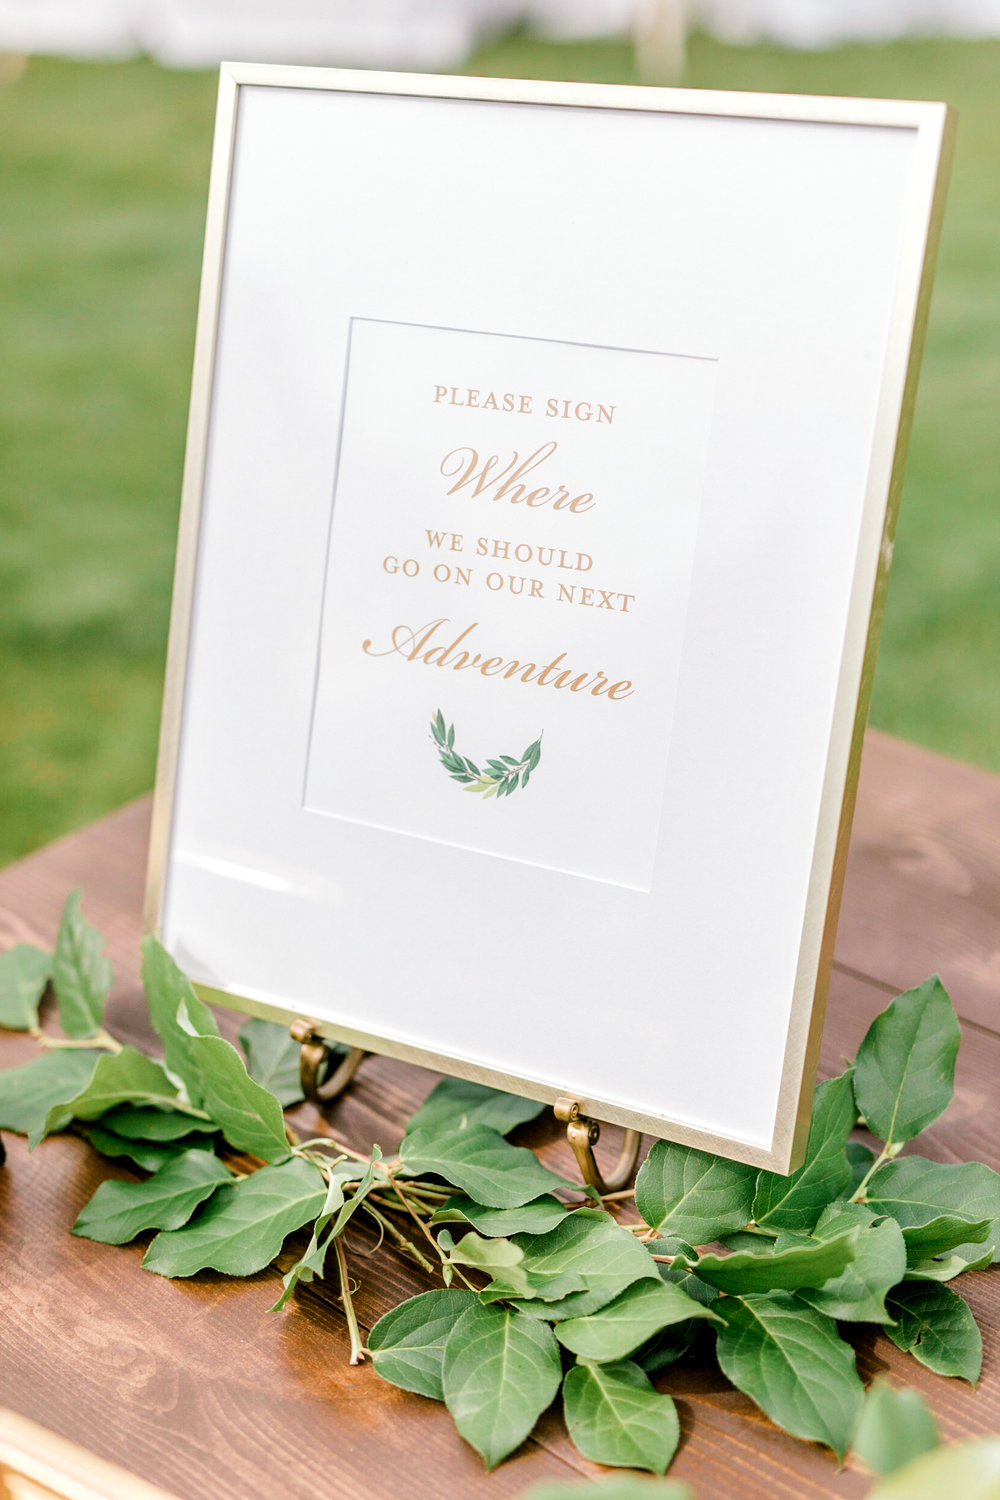 A simple and elegant guest book sign in gold and white from an Italian themed wedding at the Baltimore Country Club.